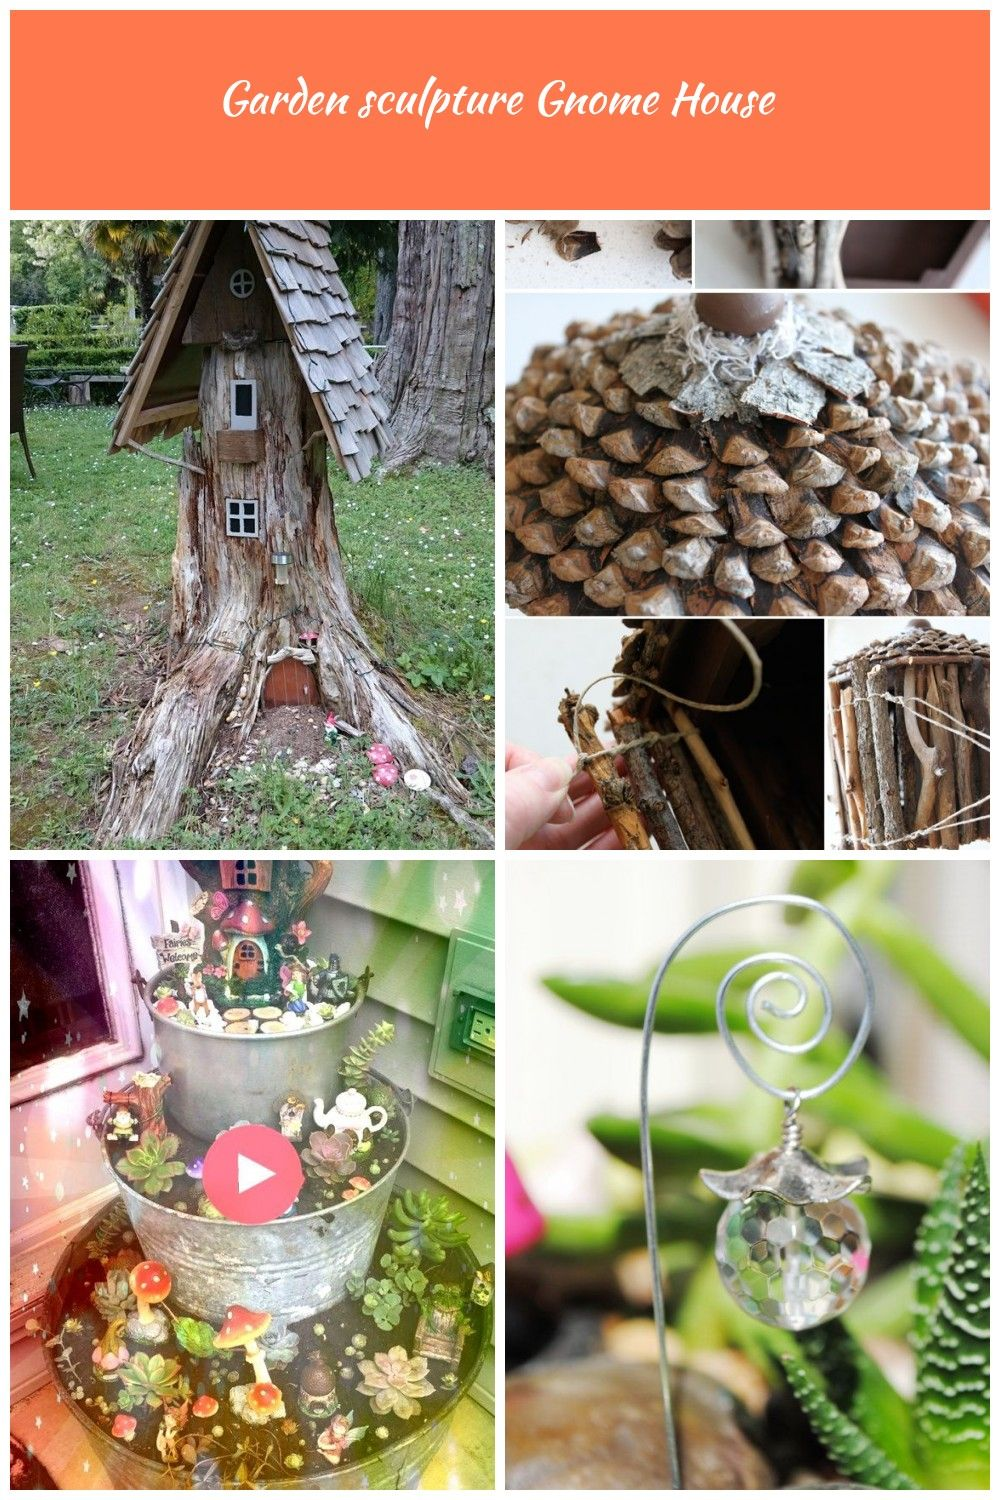 Garden sculpture Gnome house Made from old tree stump It can be always done if you have old tree stump in your garden Brings lots of fun for children This is an example g...